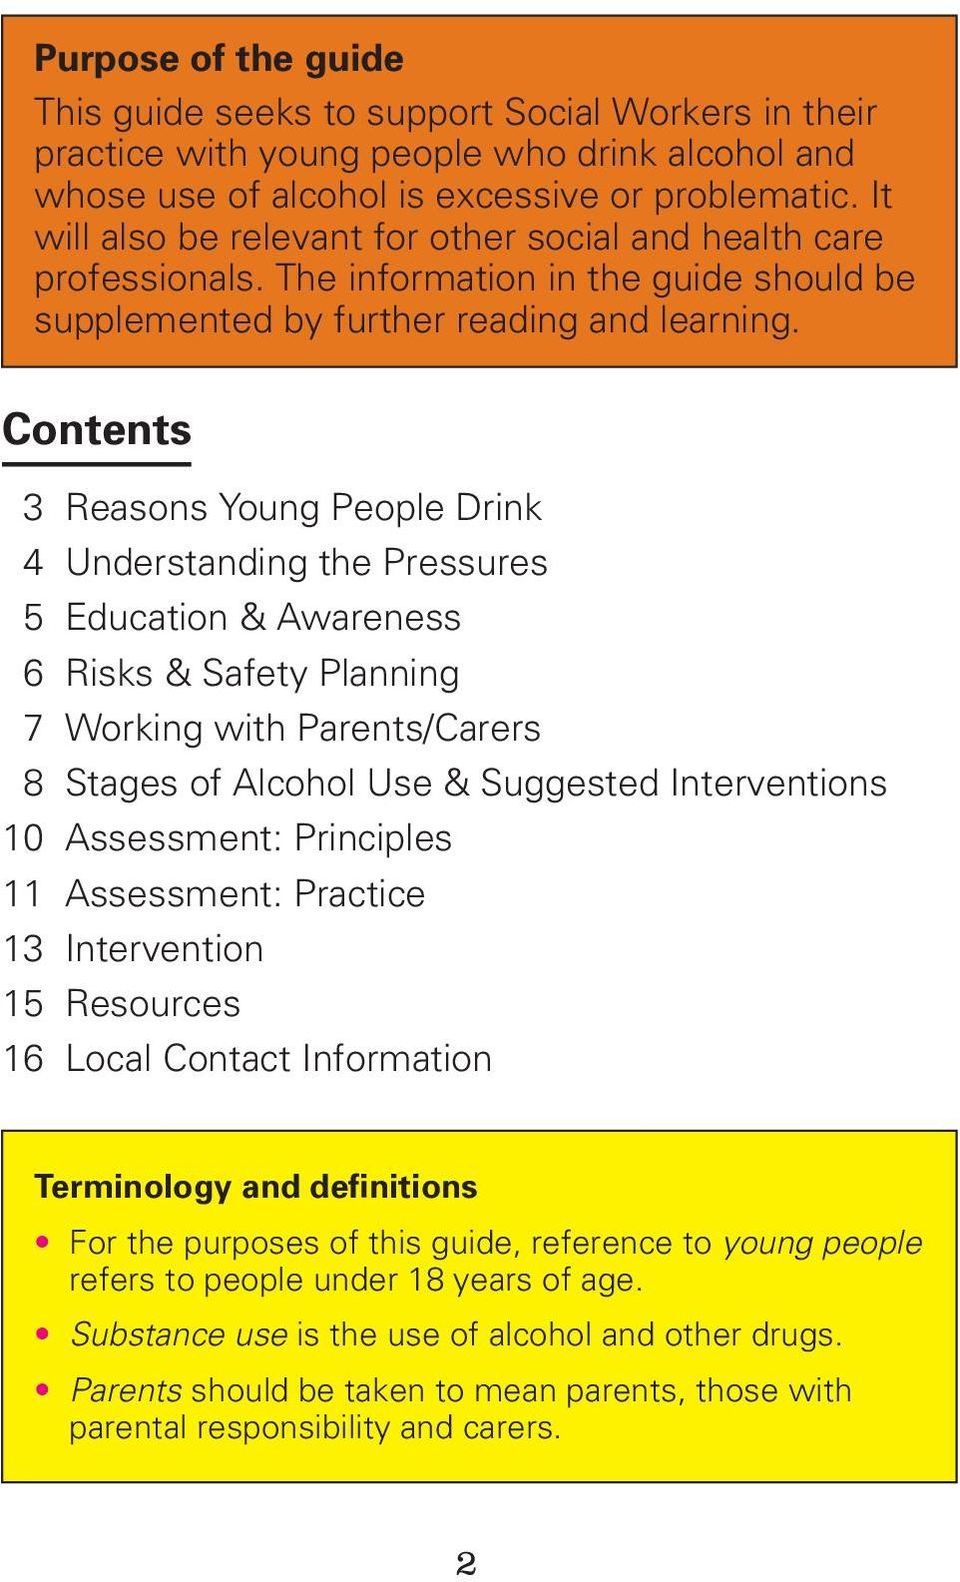 Contents 3 Reasons Young People Drink 4 Understanding the Pressures 5 Education & Awareness 6 Risks & Safety Planning 7 Working with Parents/Carers 8 Stages of Alcohol Use & Suggested Interventions